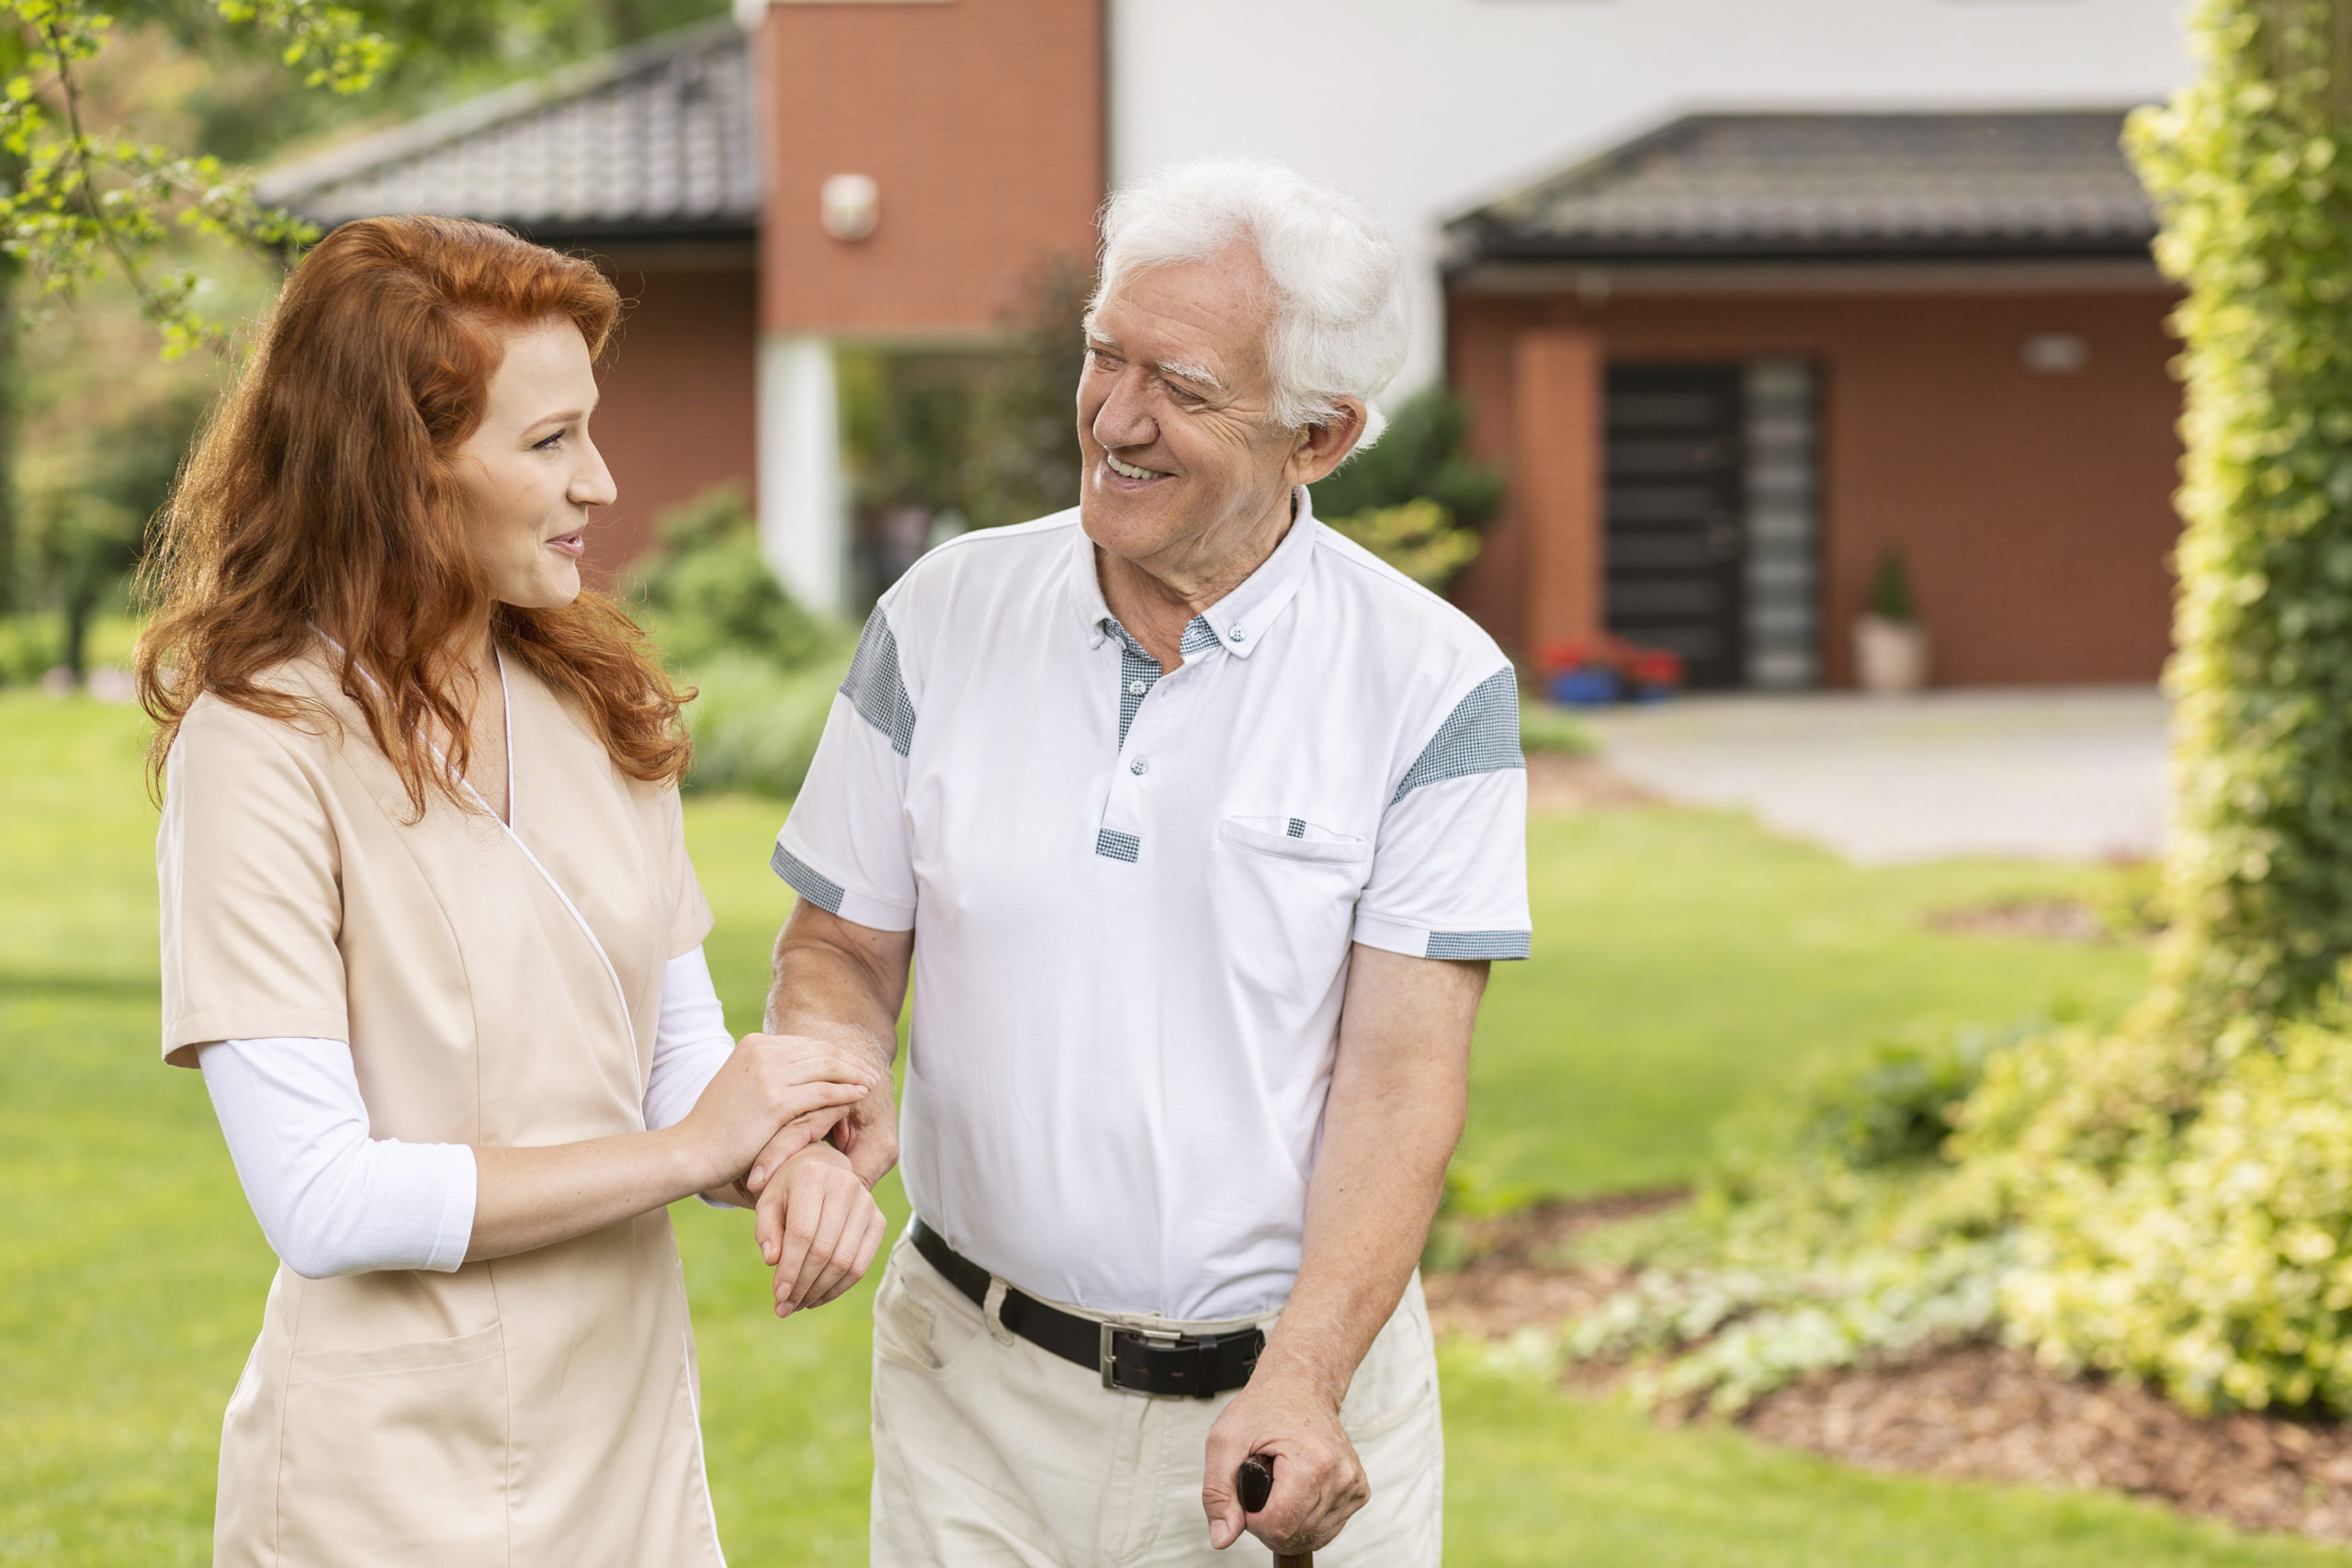 Smiling grey-haired senior man with a walking stick talking to a helpful caretaker in uniform in the garden of a nursing home.